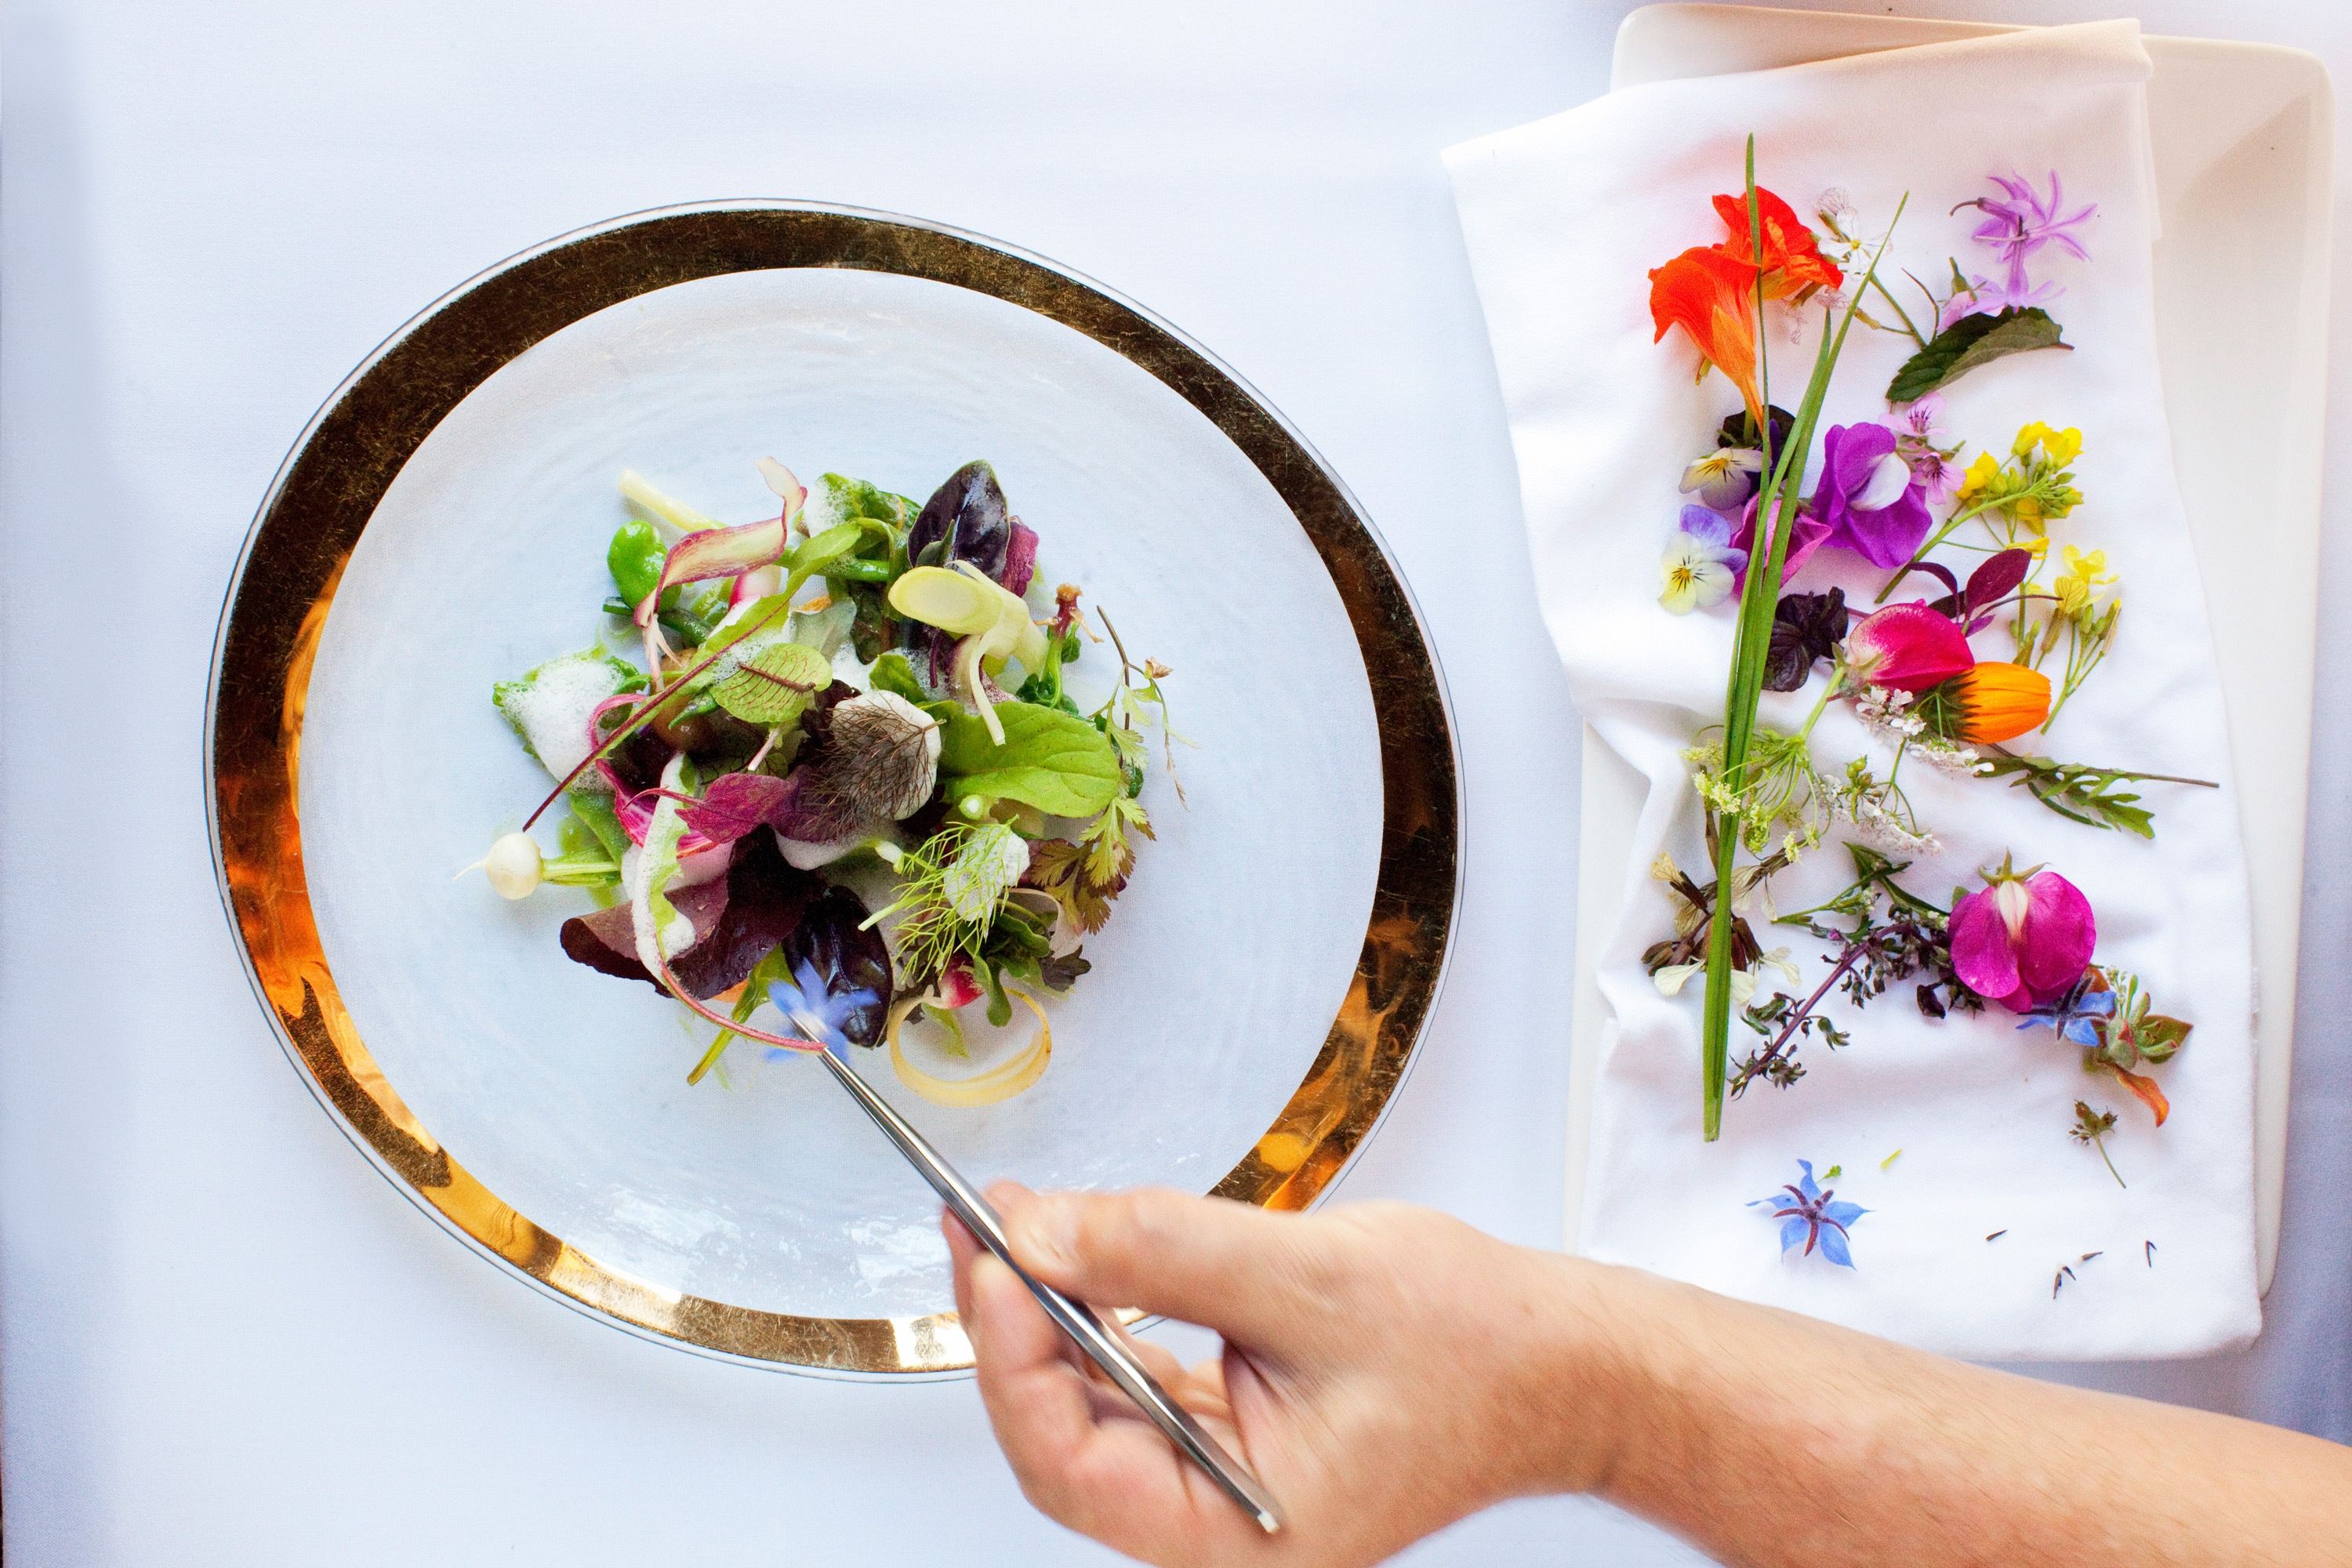 The Art of Plating - In vier Schritten zum kunstvoll angerichteten Teller